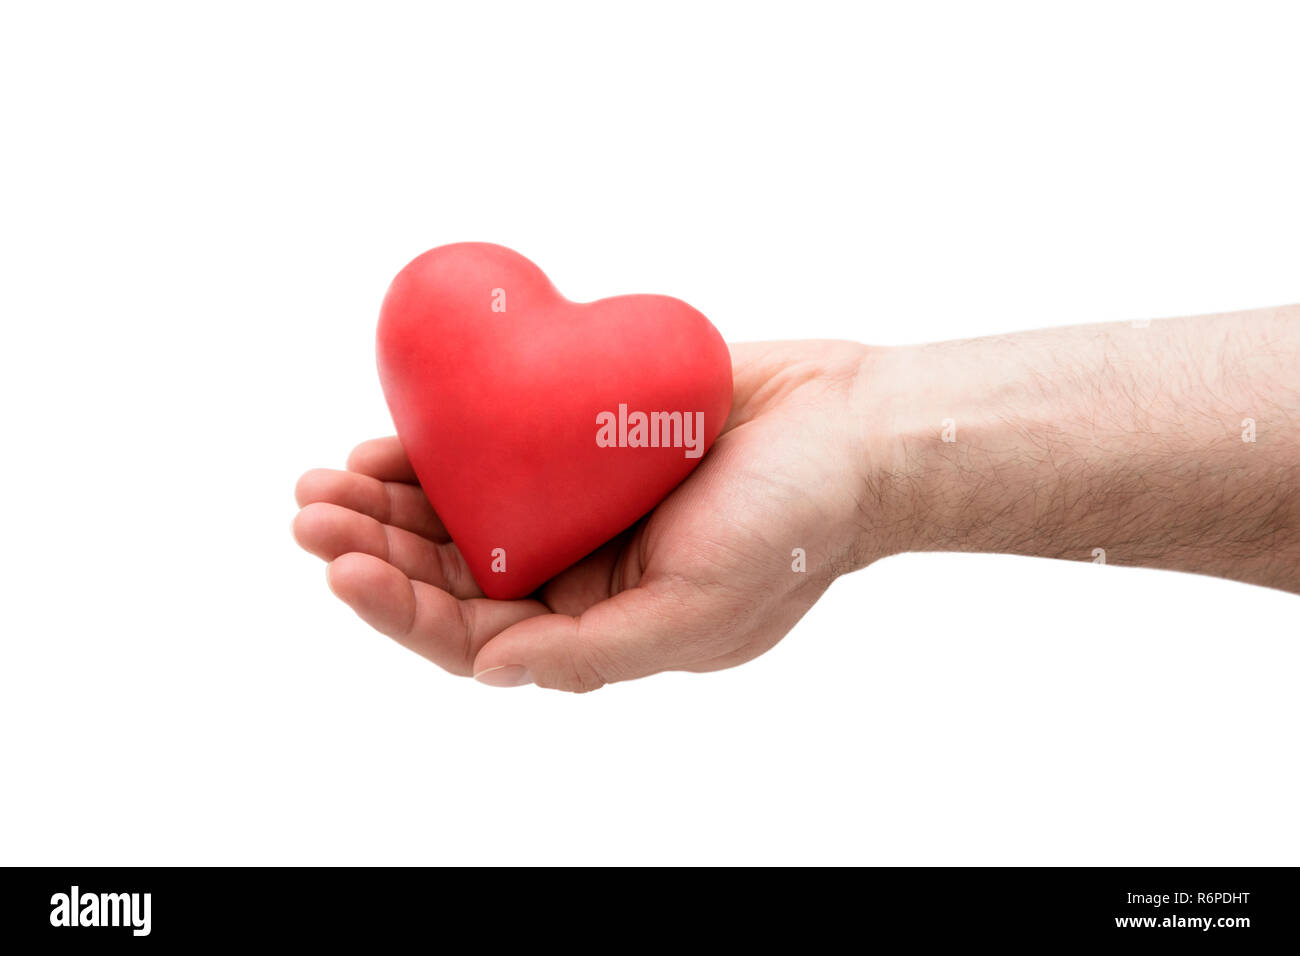 Red heart in man's hand - Stock Photo